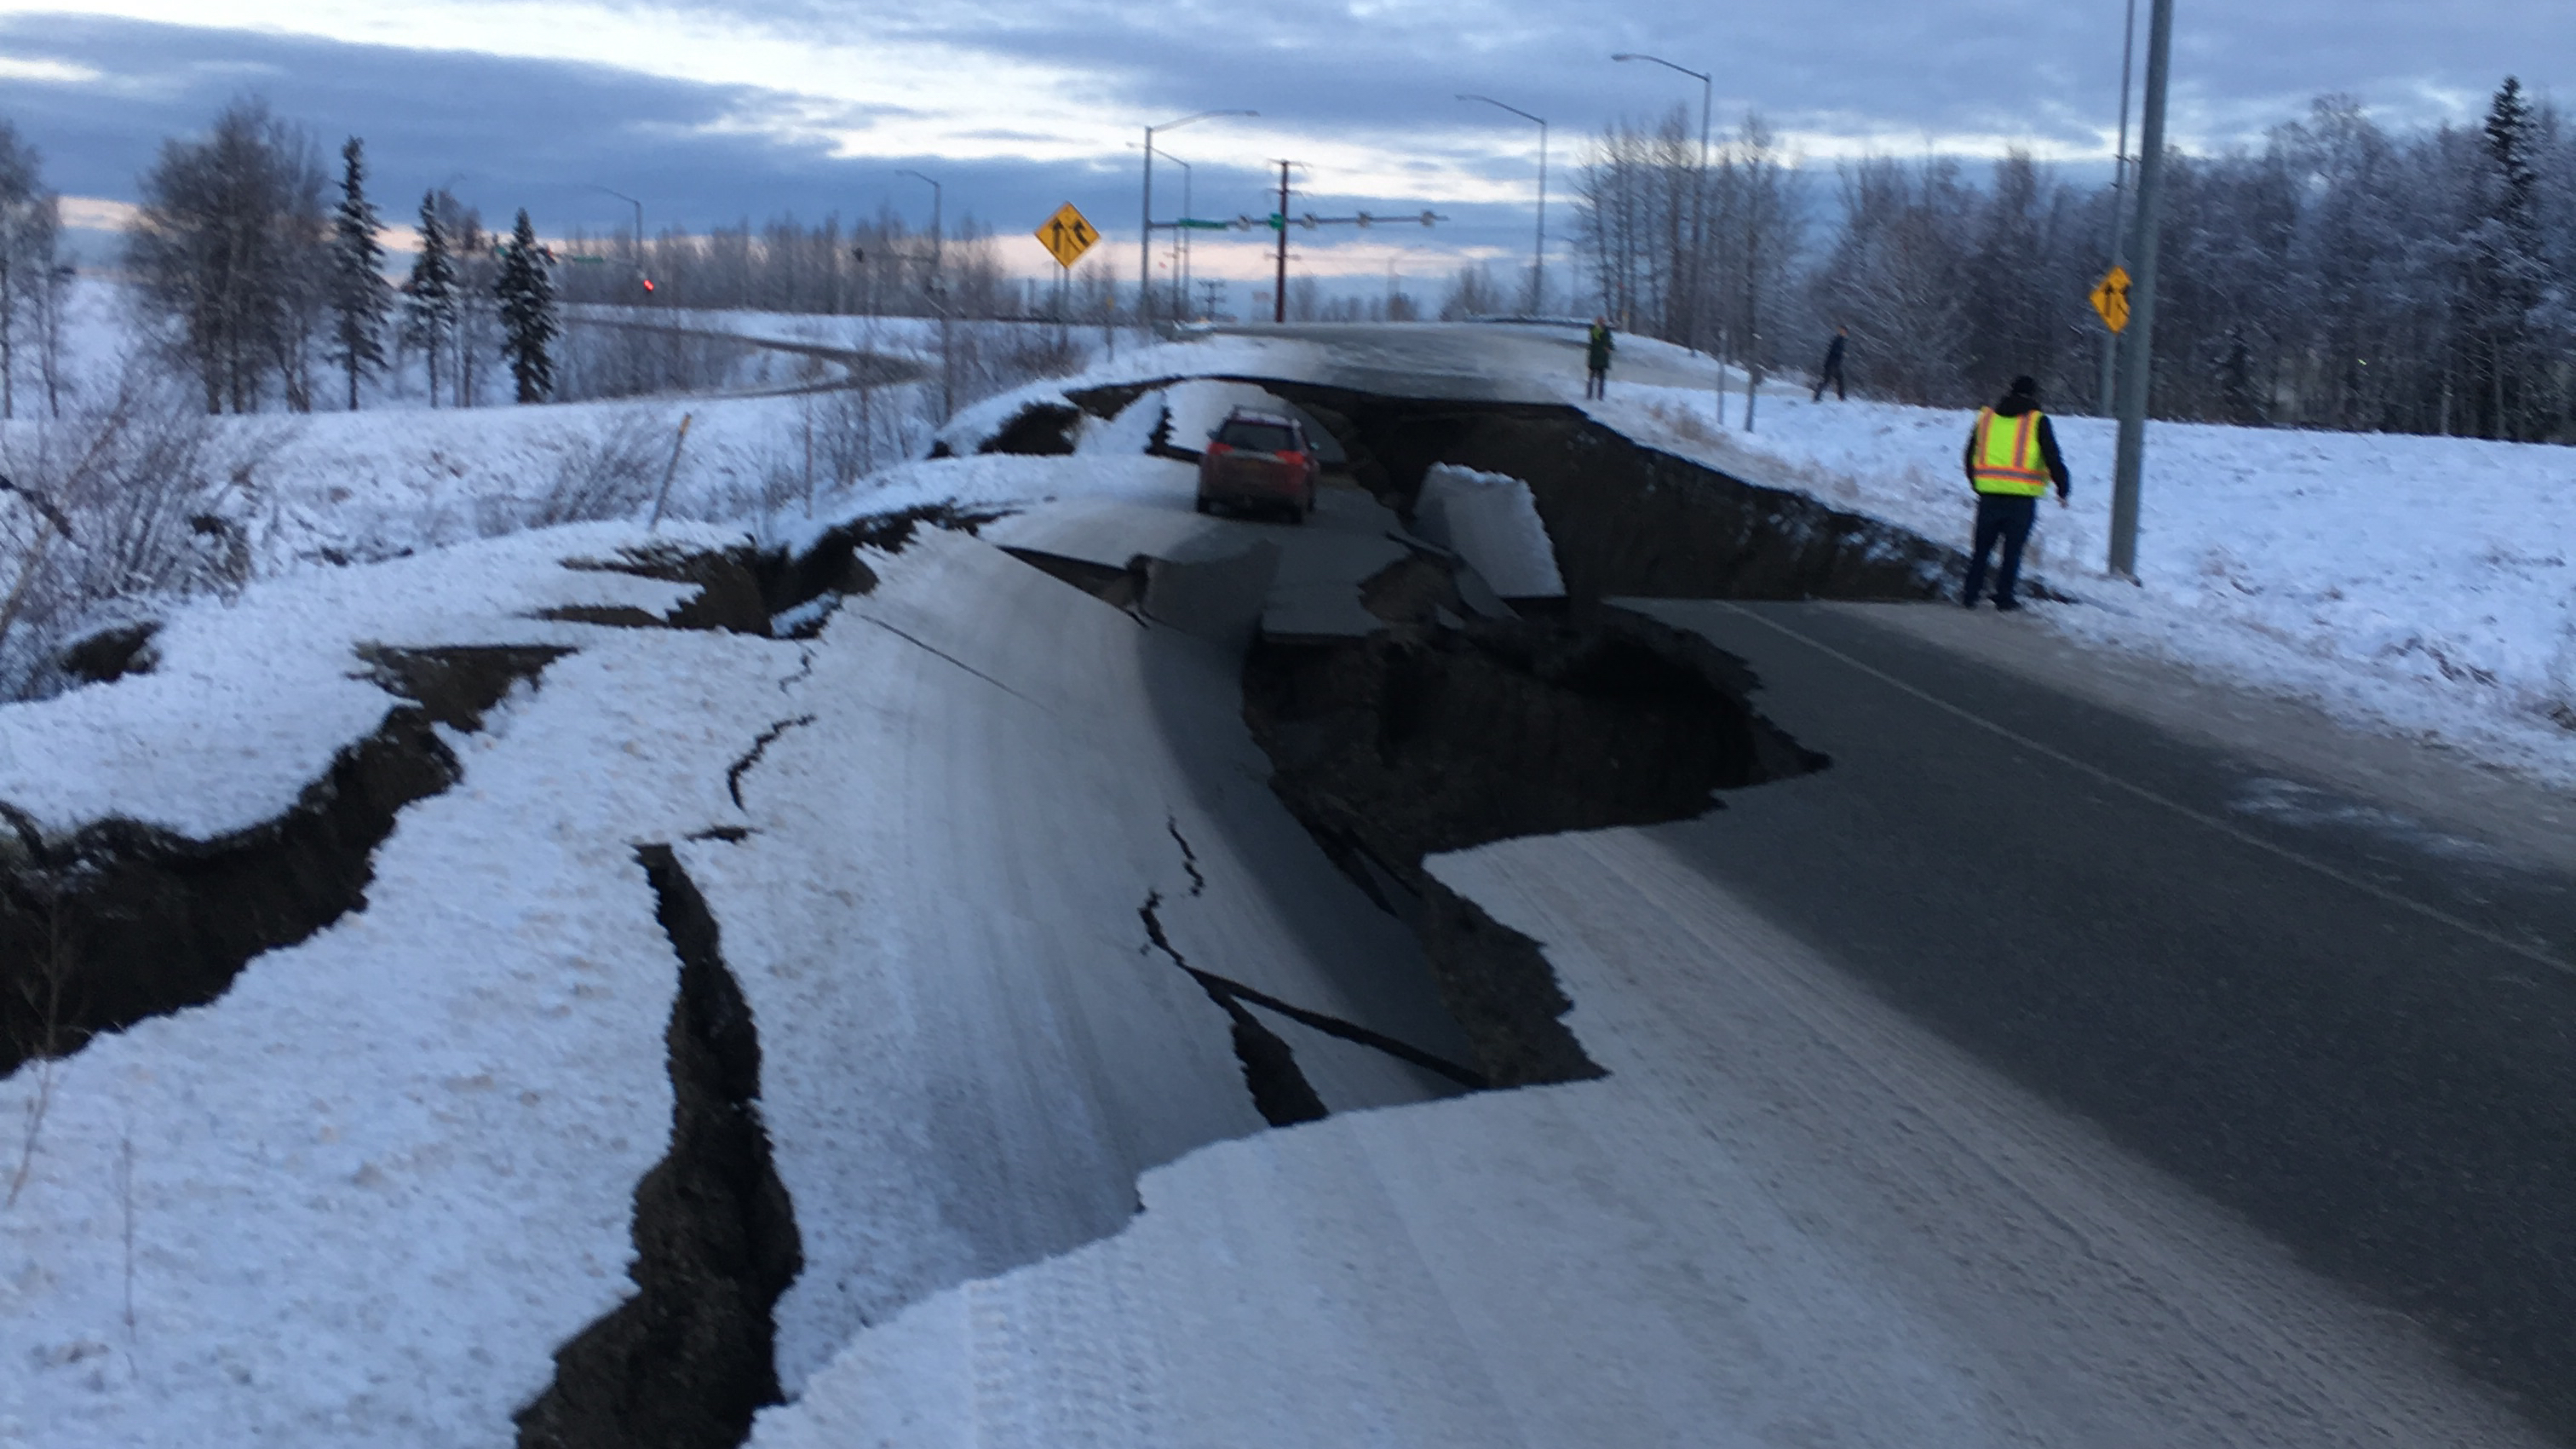 alaska earthquake today - photo #3